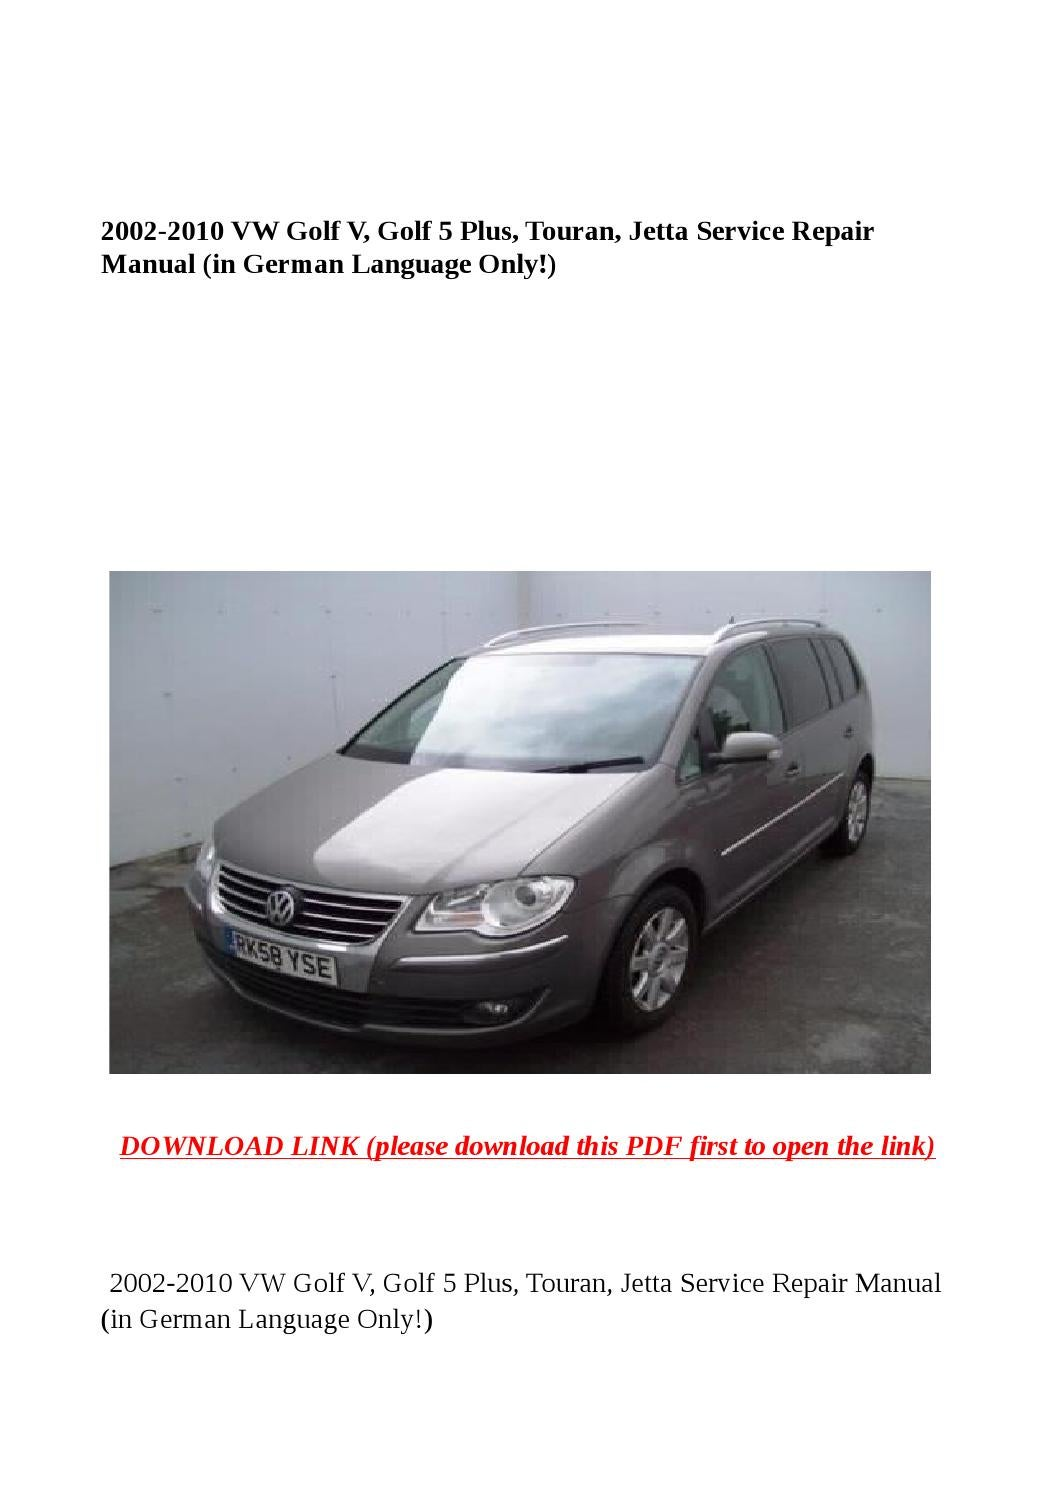 2002 2010 Vw Golf V 5 Plus Touran Jetta Service Repair Wiring Diagram Pdf Manual In German Language Only By Yghj Issuu